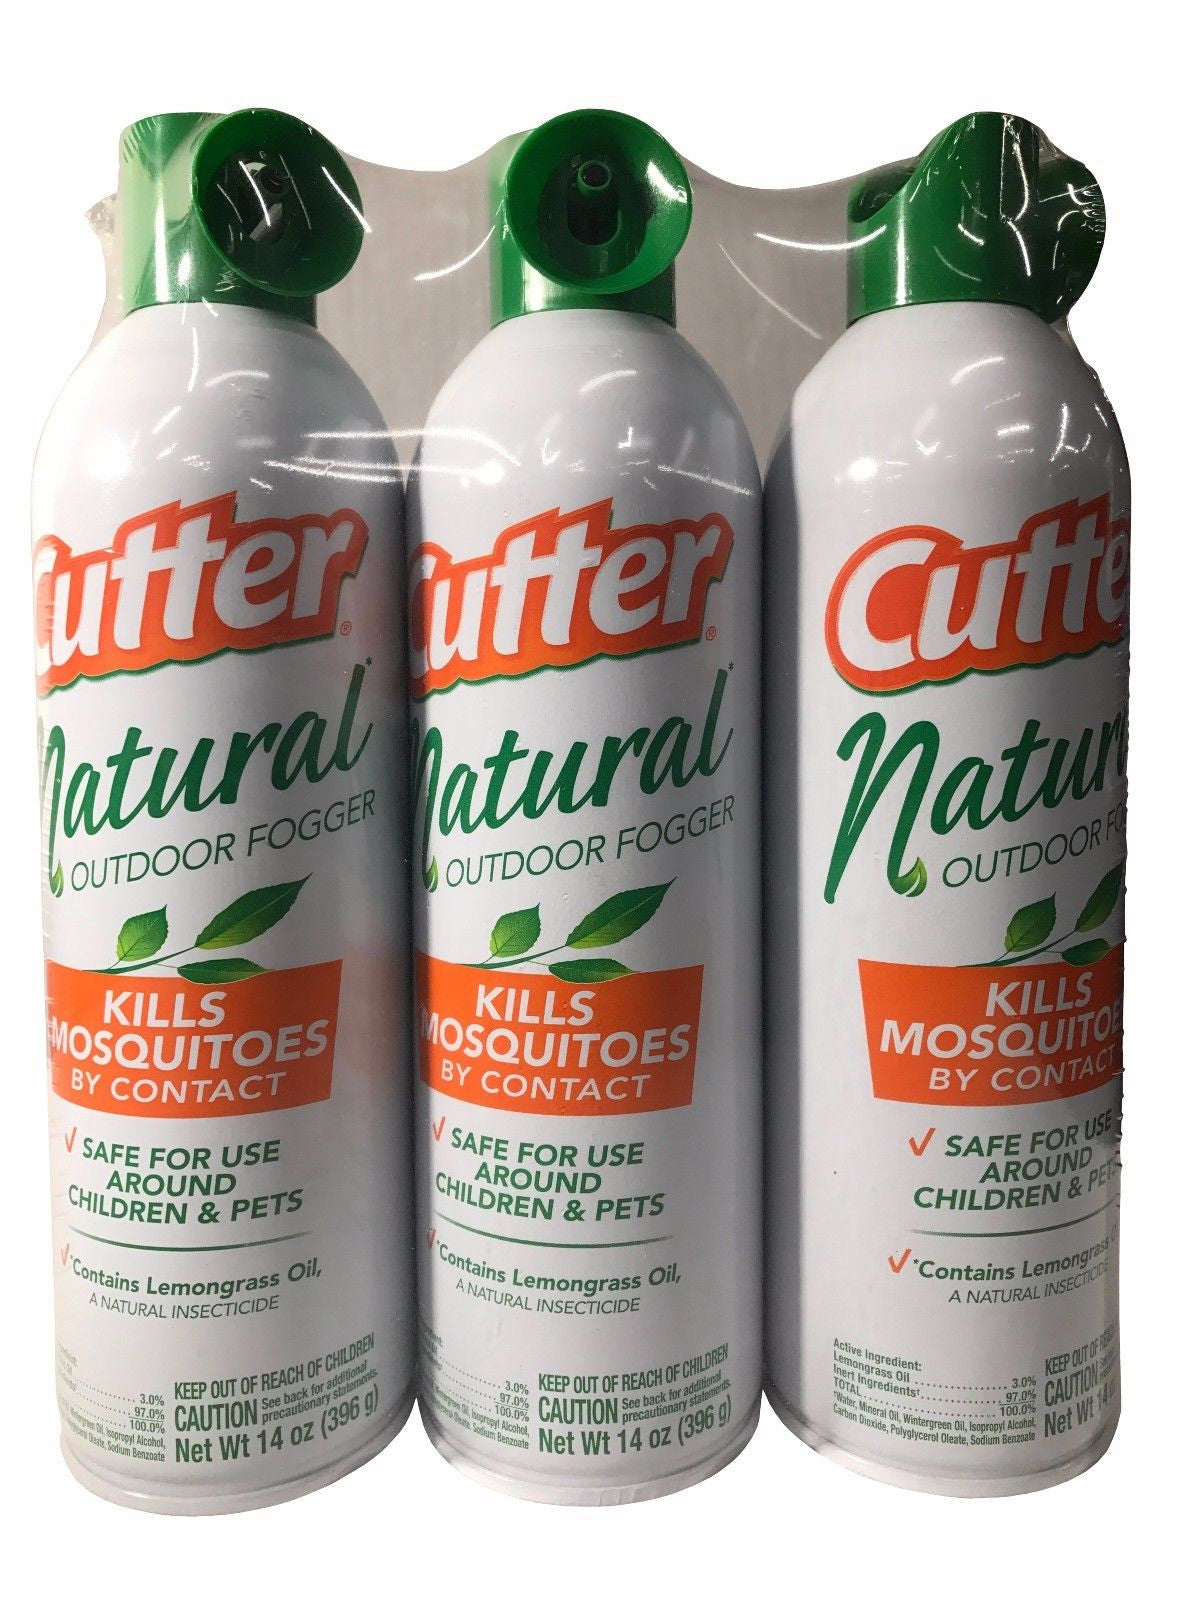 Cutter Natural Outdoor Fogger Mosquitos Insects Spray 14 OZ Each 3 Pack